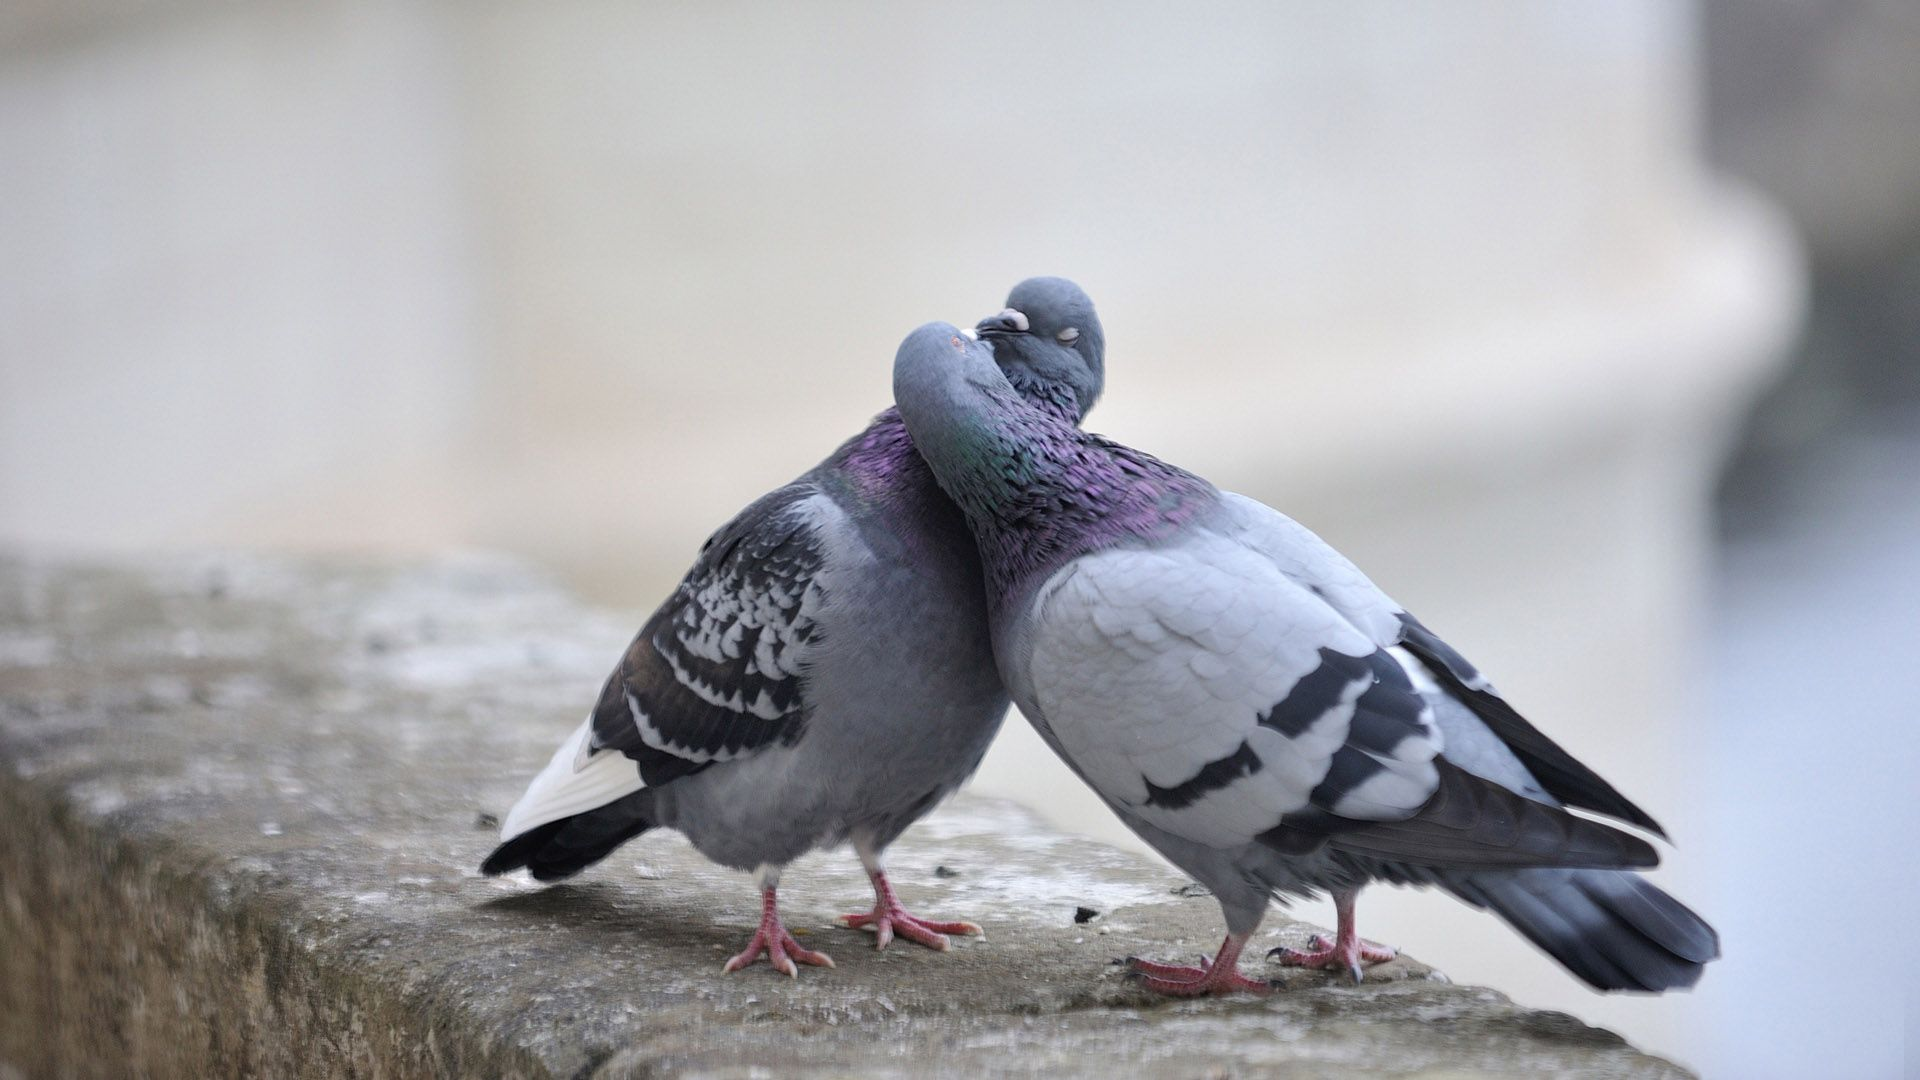 Let Us Always Meet Each Other With Smile For The Smile Is The Beginning Of Love Love Smile Quote Sms Beautiful Birds Cute Pigeon Pigeon